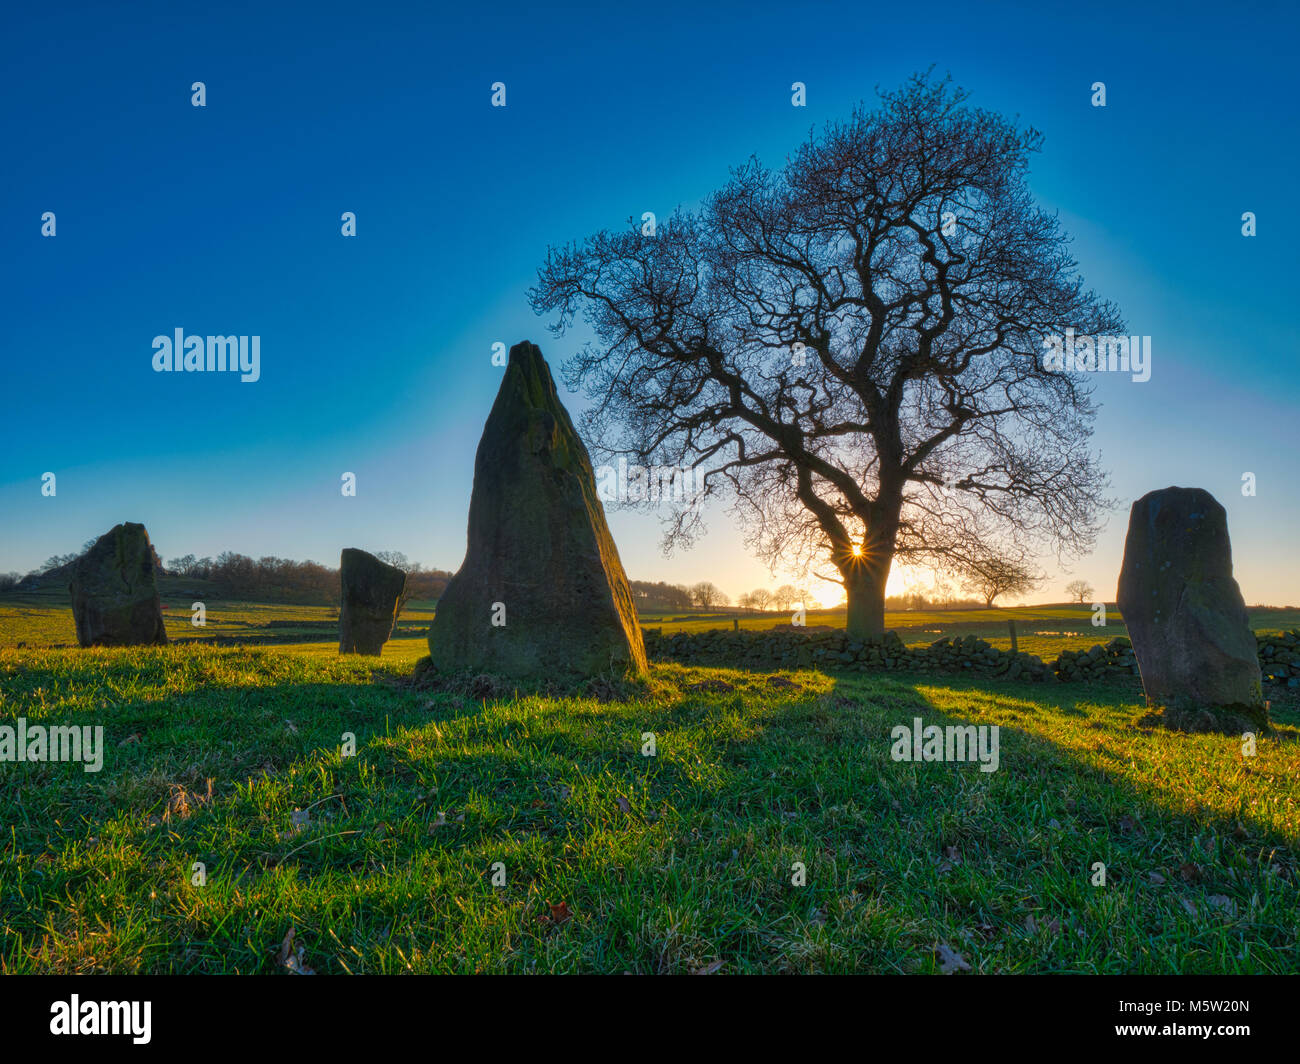 spectacular sunset on a bitterly cold day at The Grey Ladies / Nine Stone Close Stone Circle, Robin Hood's Stride Stock Photo